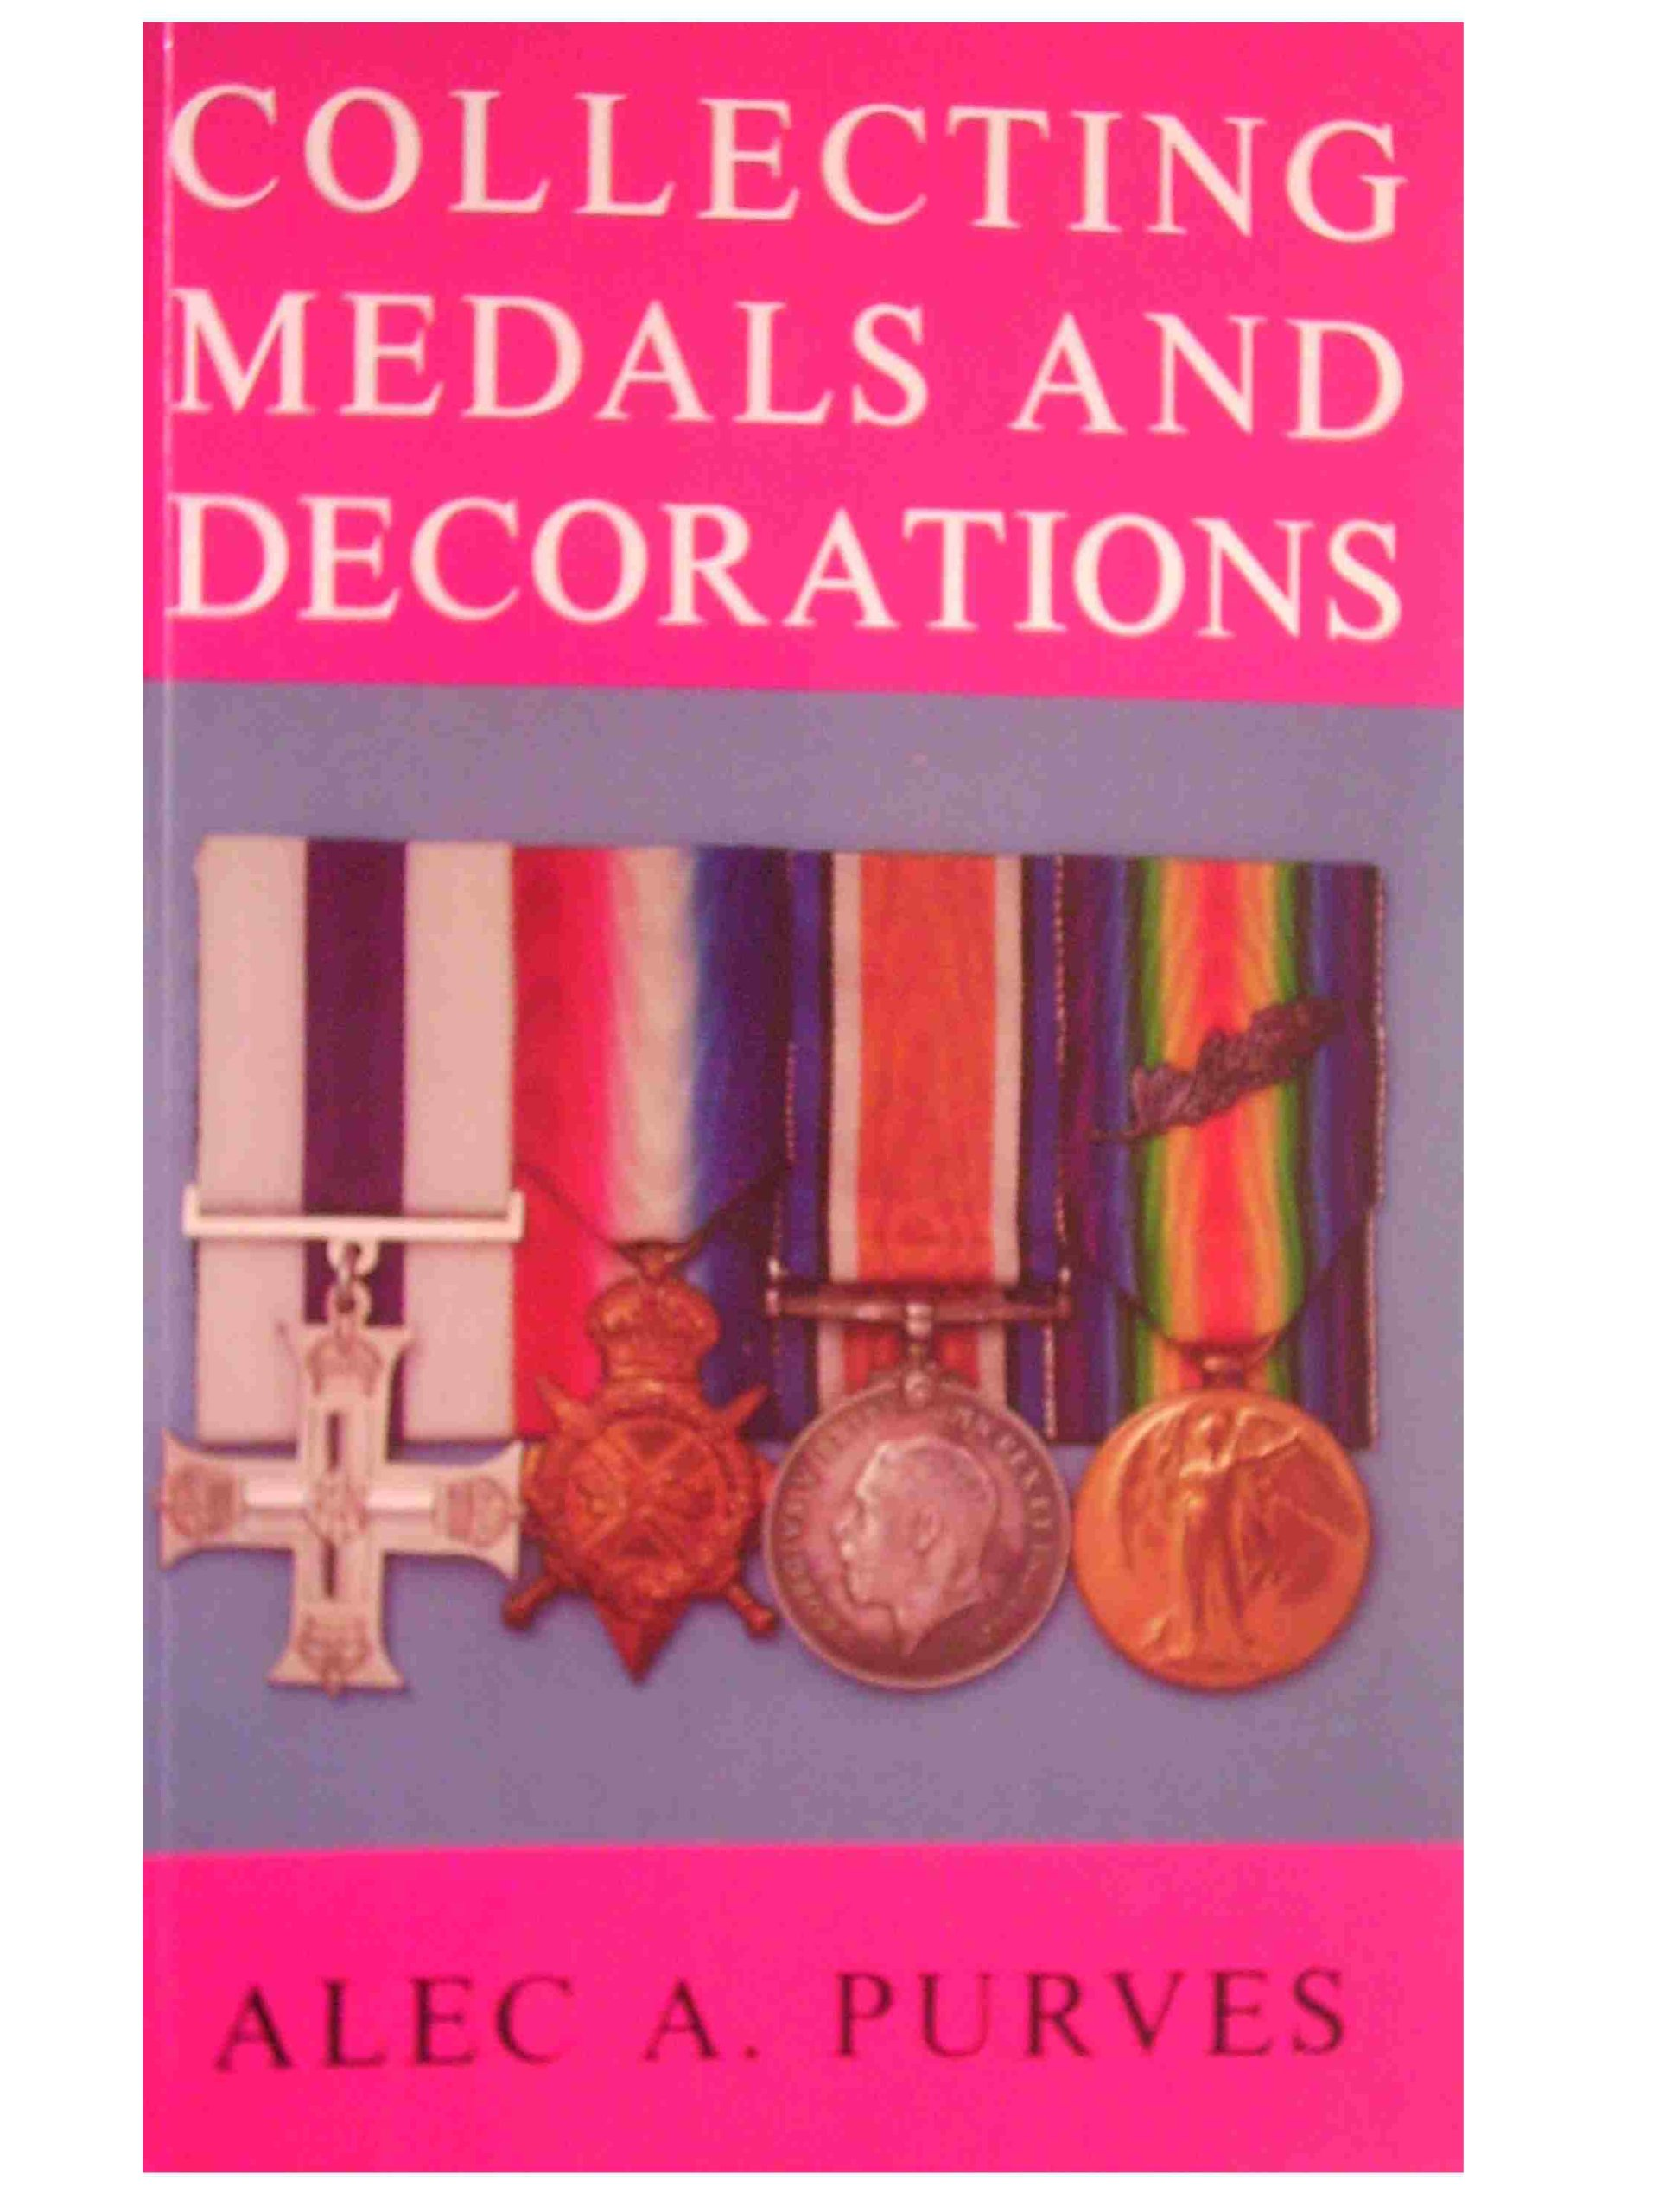 Collecting Medals and Decorations: The Medal Collector's Handbook